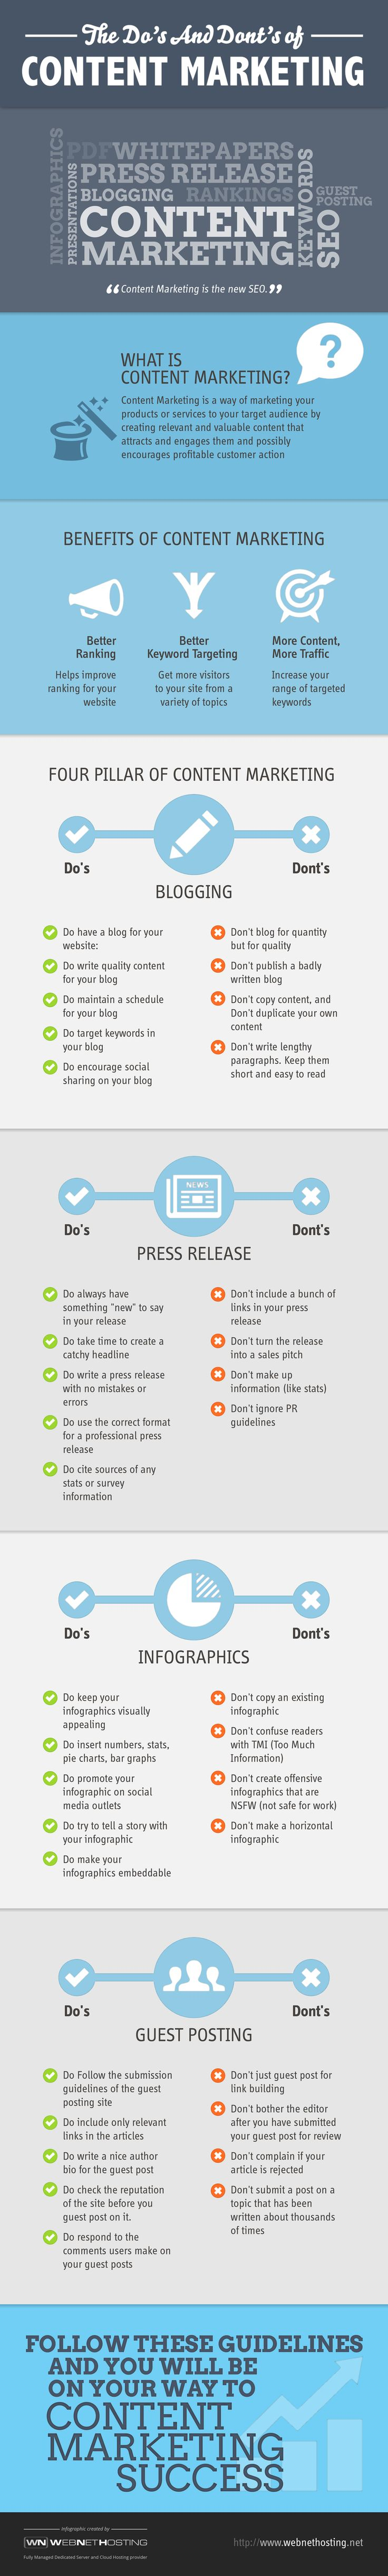 The Do's and Don'ts of #ContentMarketing